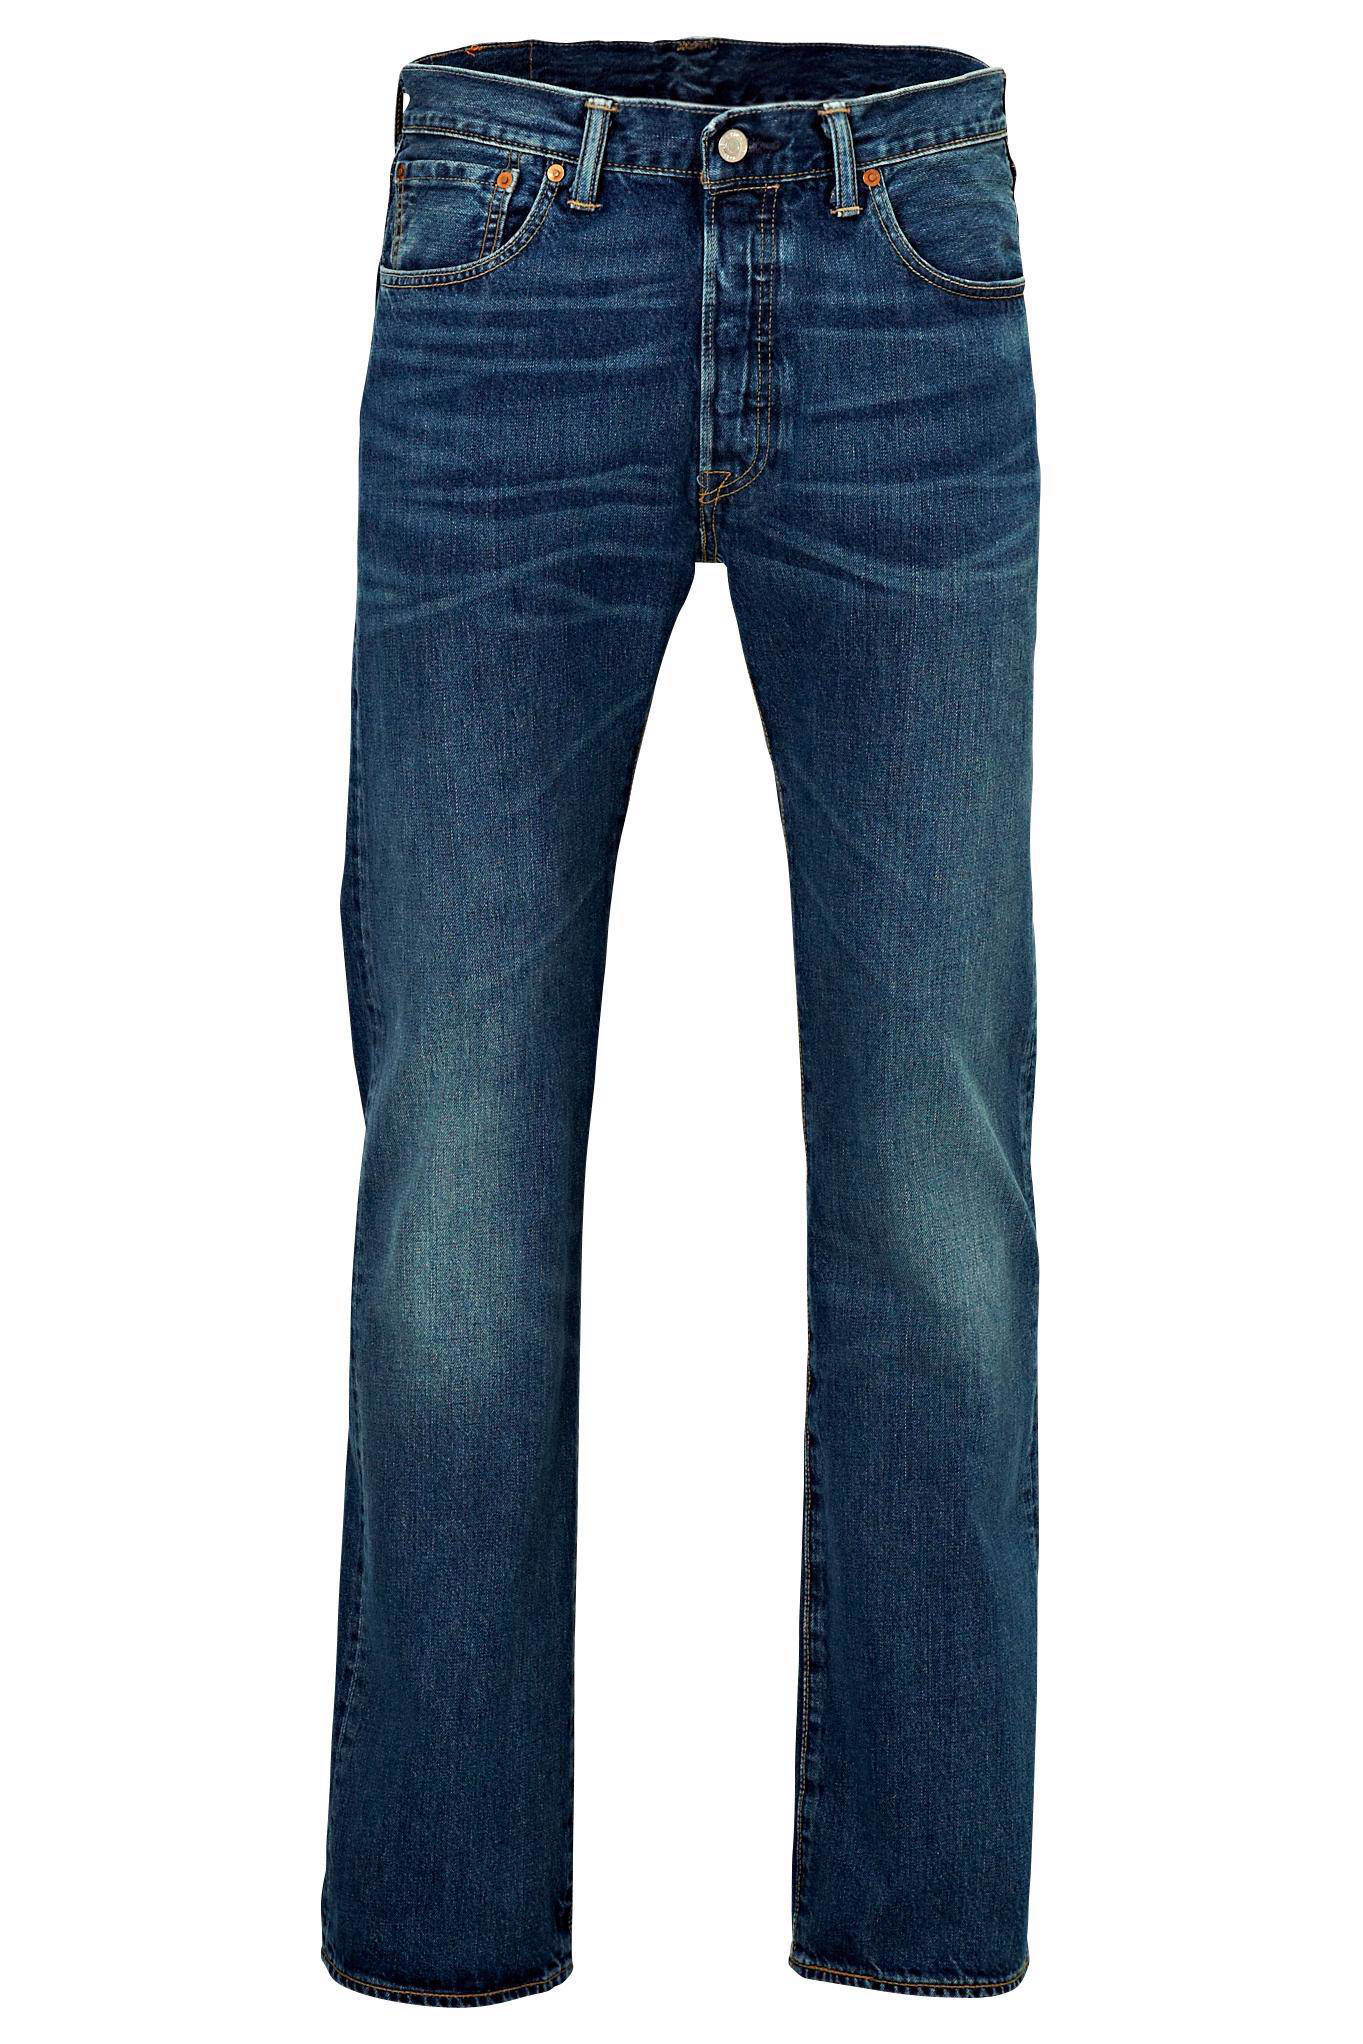 Levi's 501 regular fit jeans (heren)